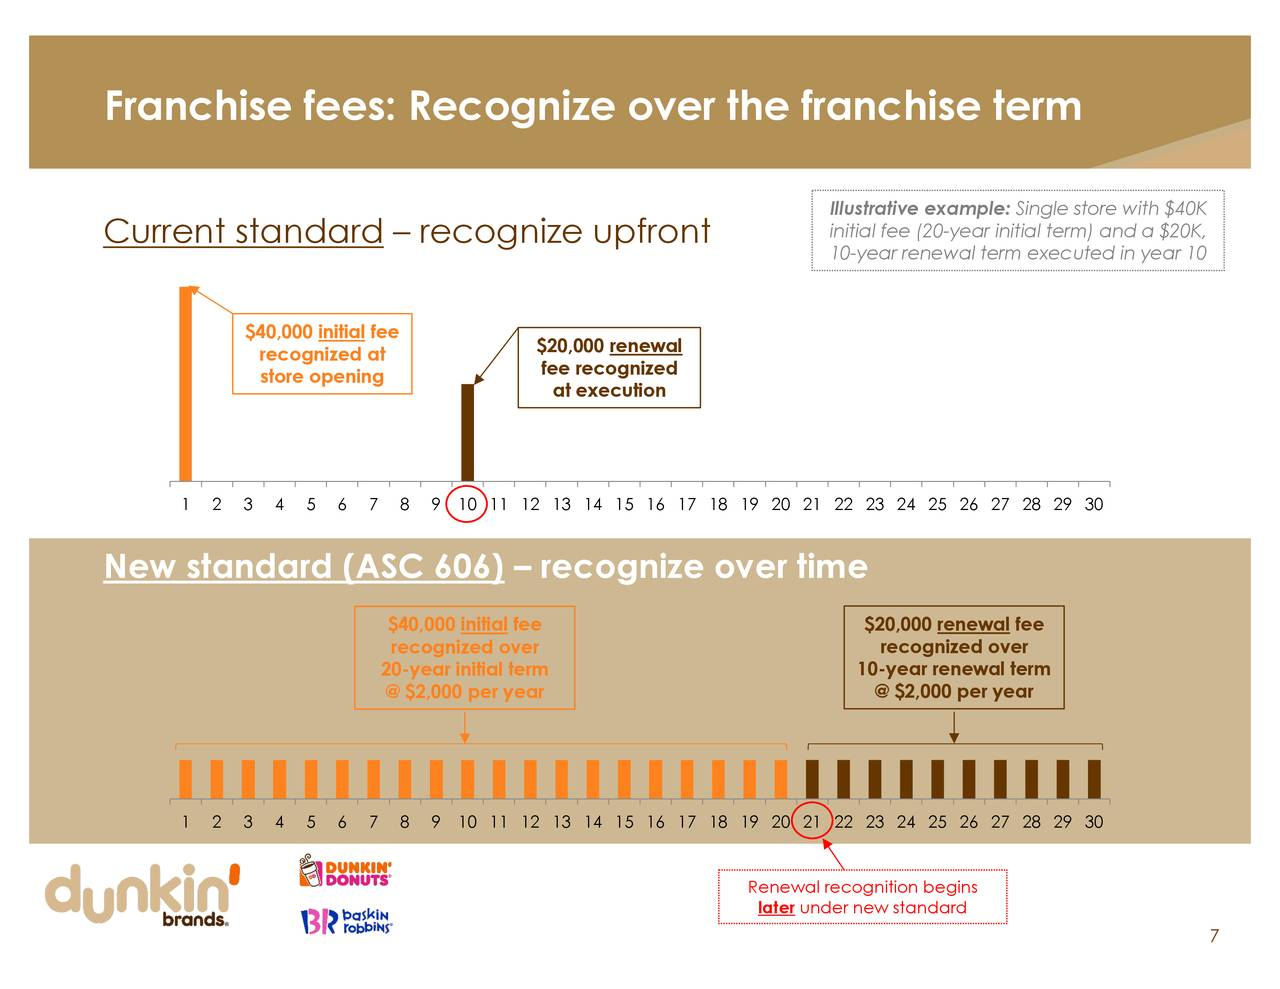 article analysis for revenue recognition timing and Consequently, the transfer pricing documentation for the foreign distributor's 2018 results should include additional analysis to explain the changes in revenue recognition and show that these results, after reliable adjustments for timing differences are made, continue to be consistent with the arm's-length standard.